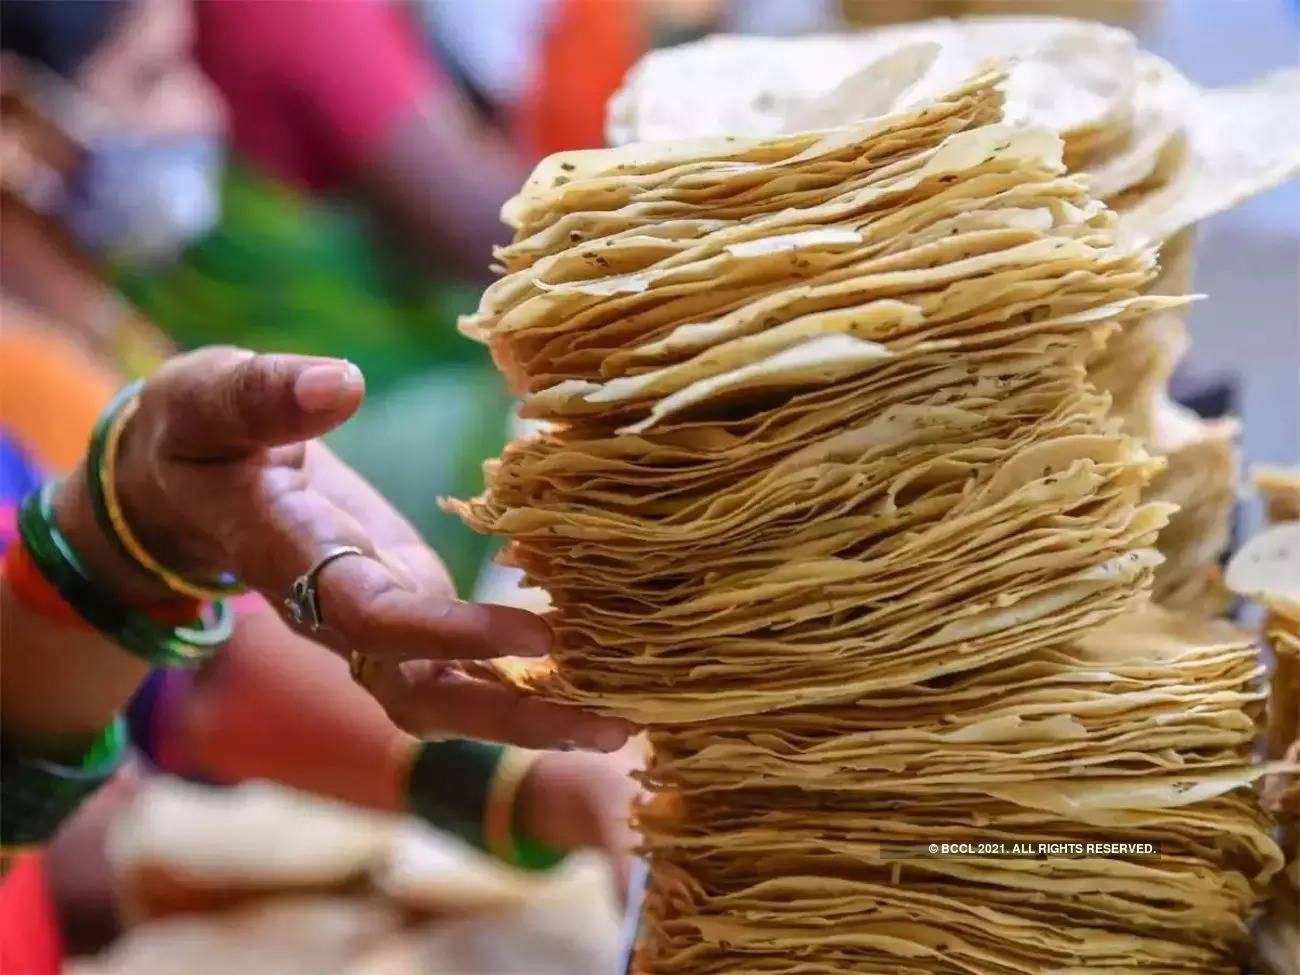 If the papad turns from round to square, the tax fund changes, find out what the GST rules are